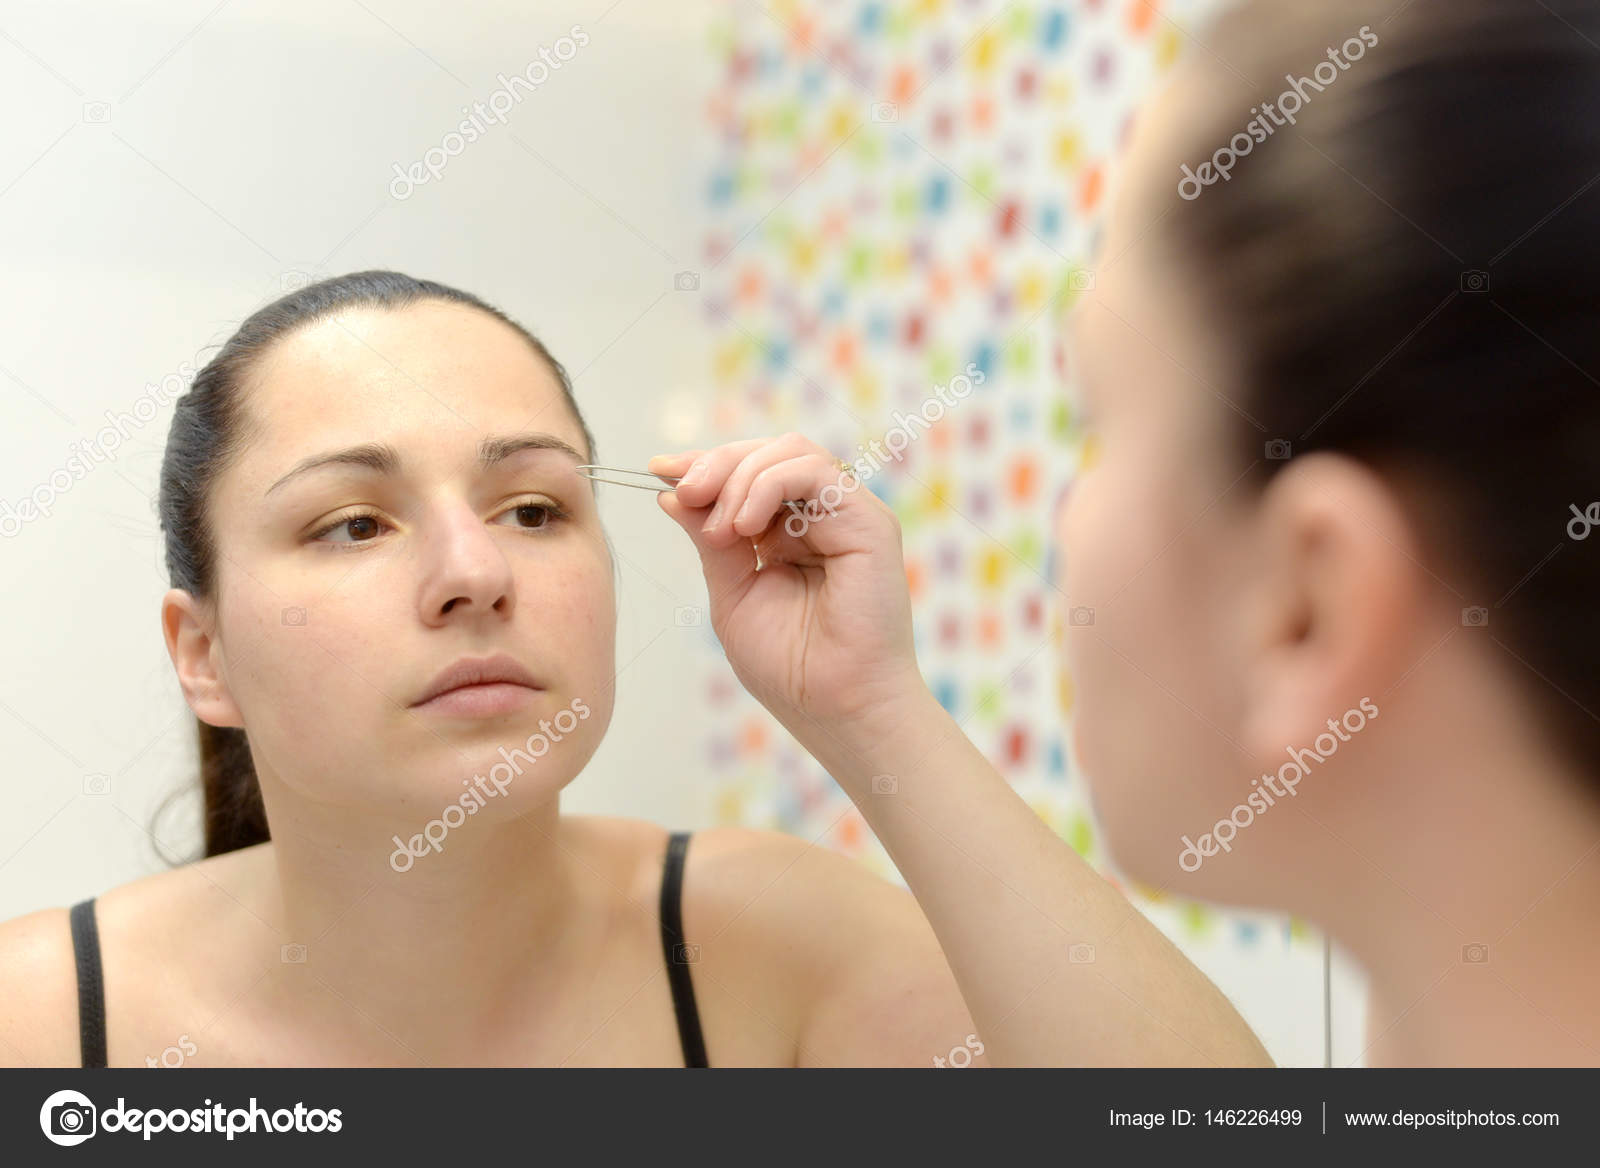 Woman Shapes Her Eyebrows And Looking In The Mirror In The Bathr